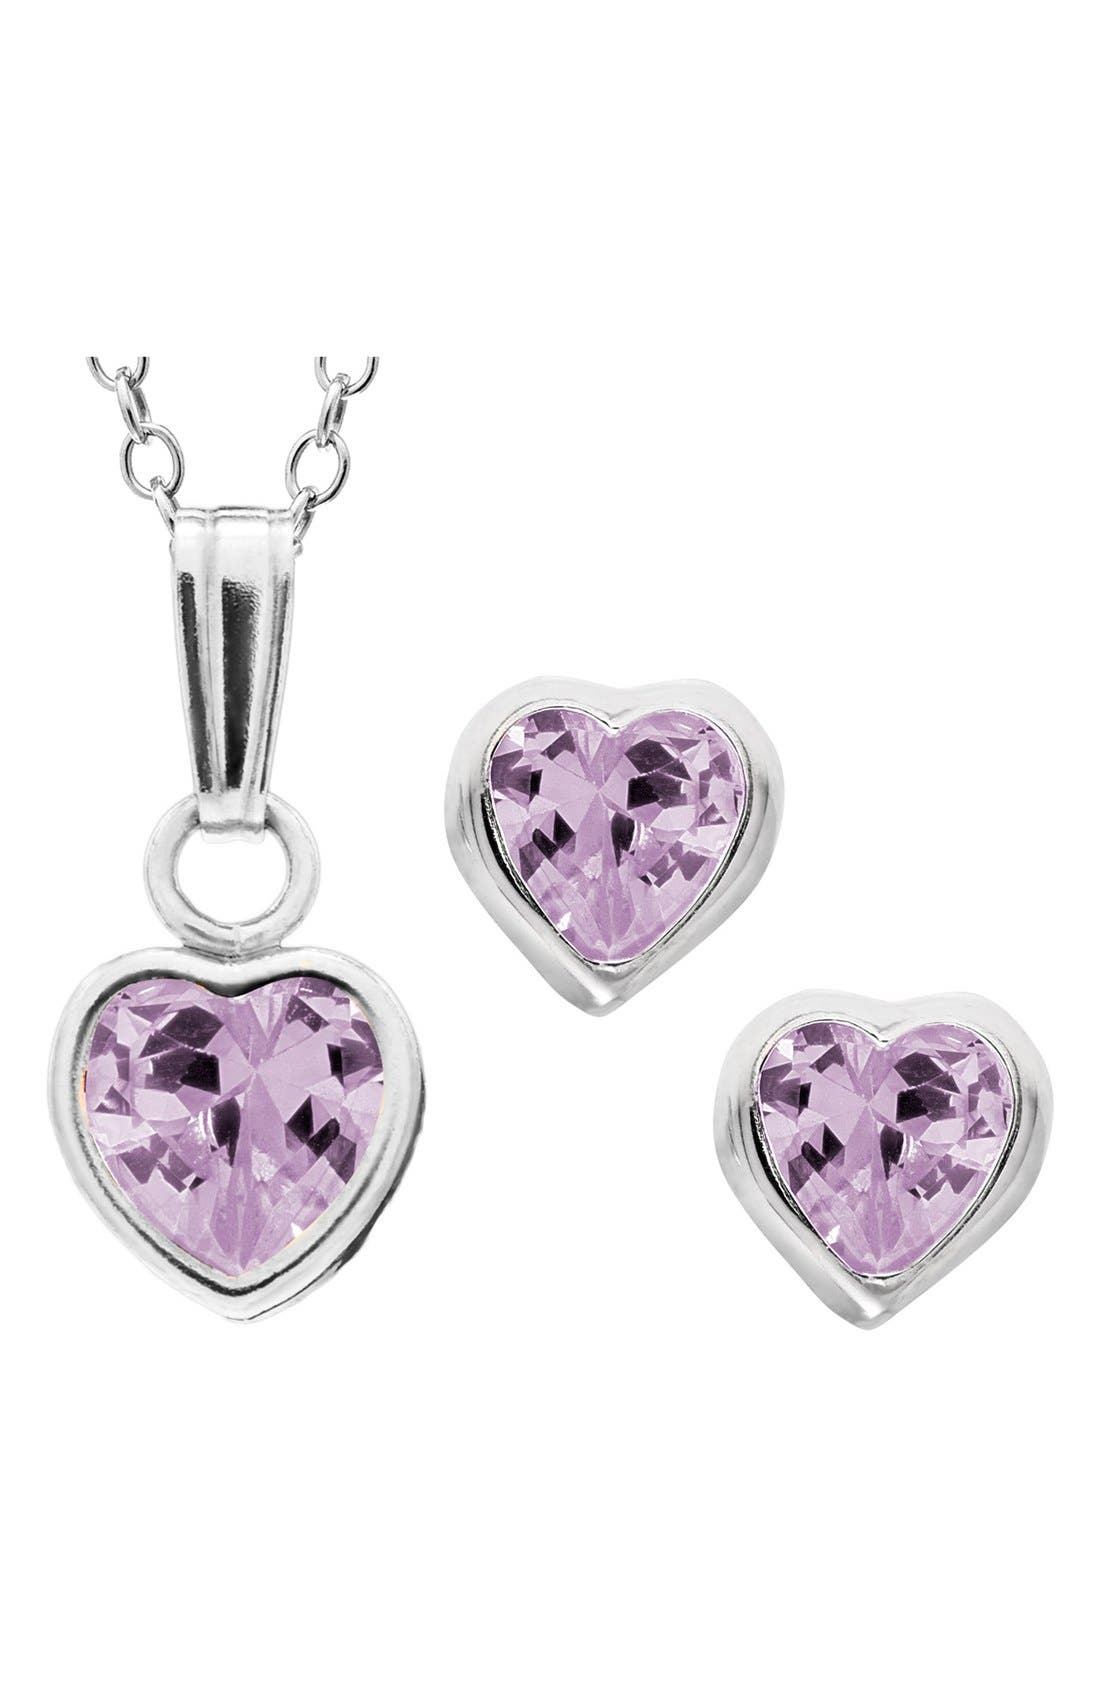 Sterling Silver & Cubic Zirconia Birthstone Necklace & Earrings Set,                         Main,                         color, 501